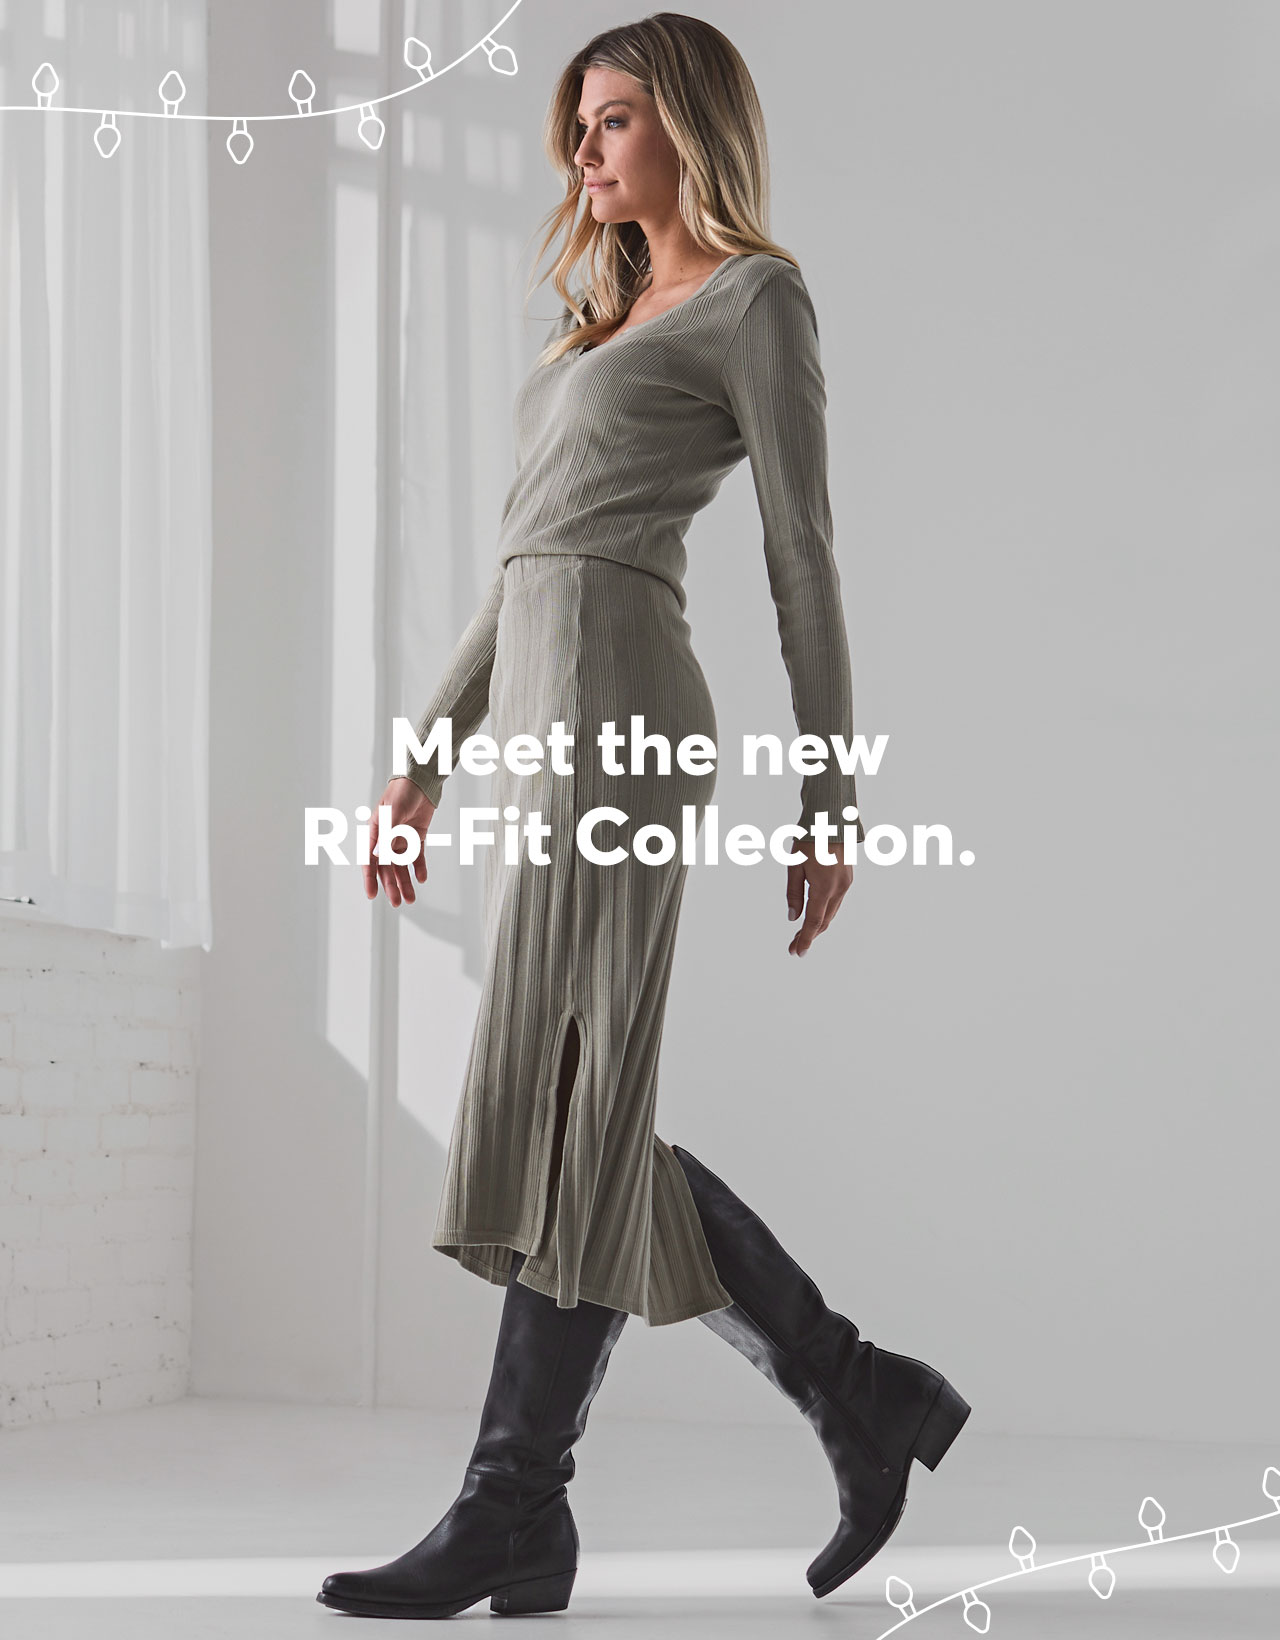 Meet the new Rib-Fit Collection